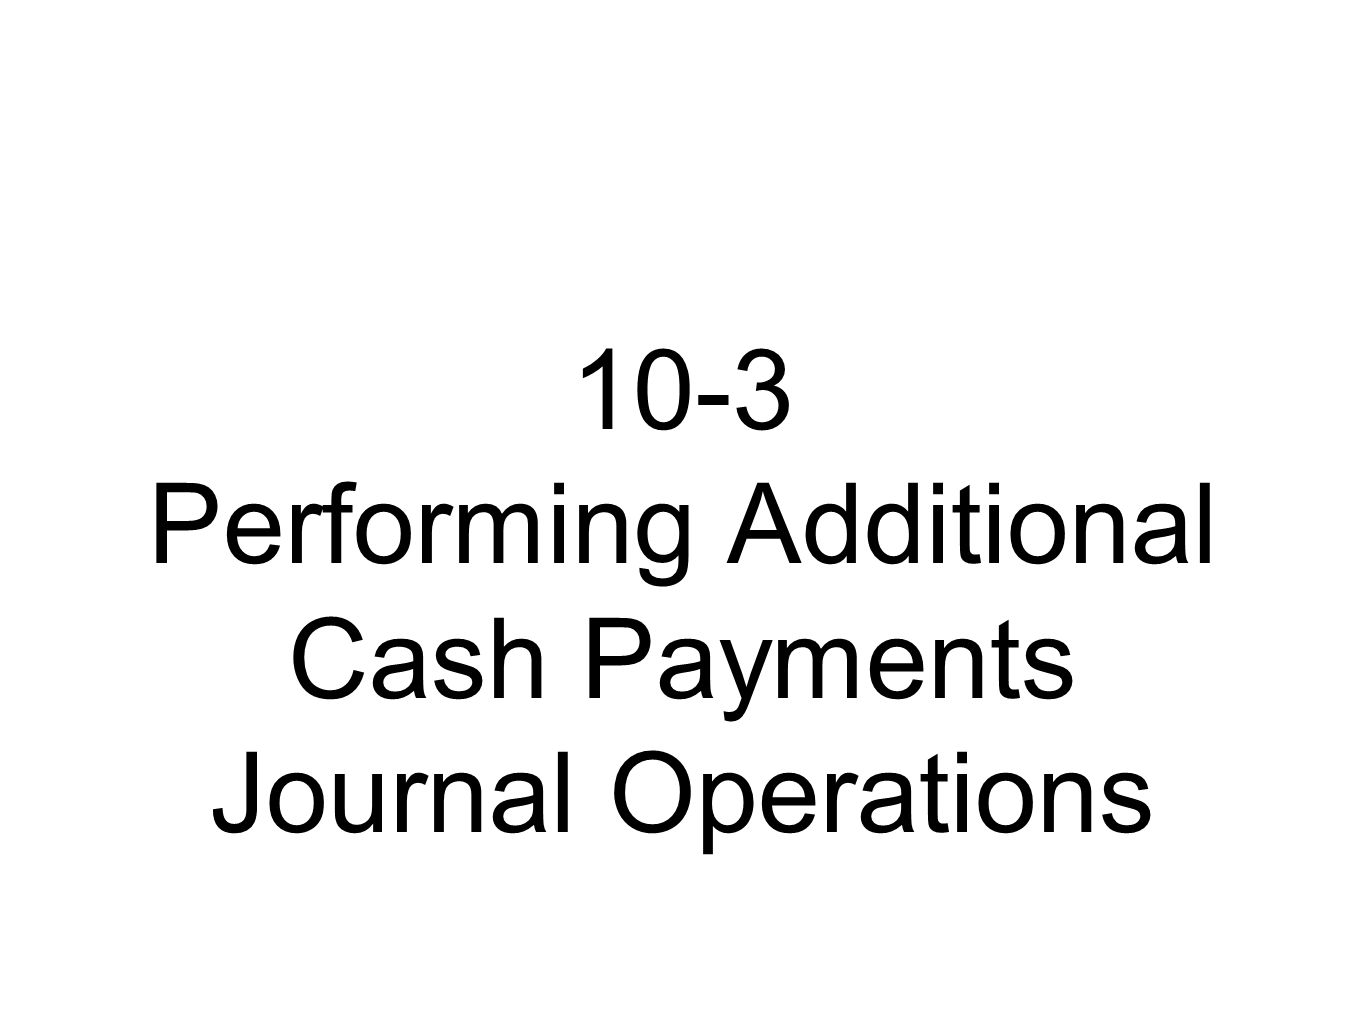 10-3 Performing Additional Cash Payments Journal Operations